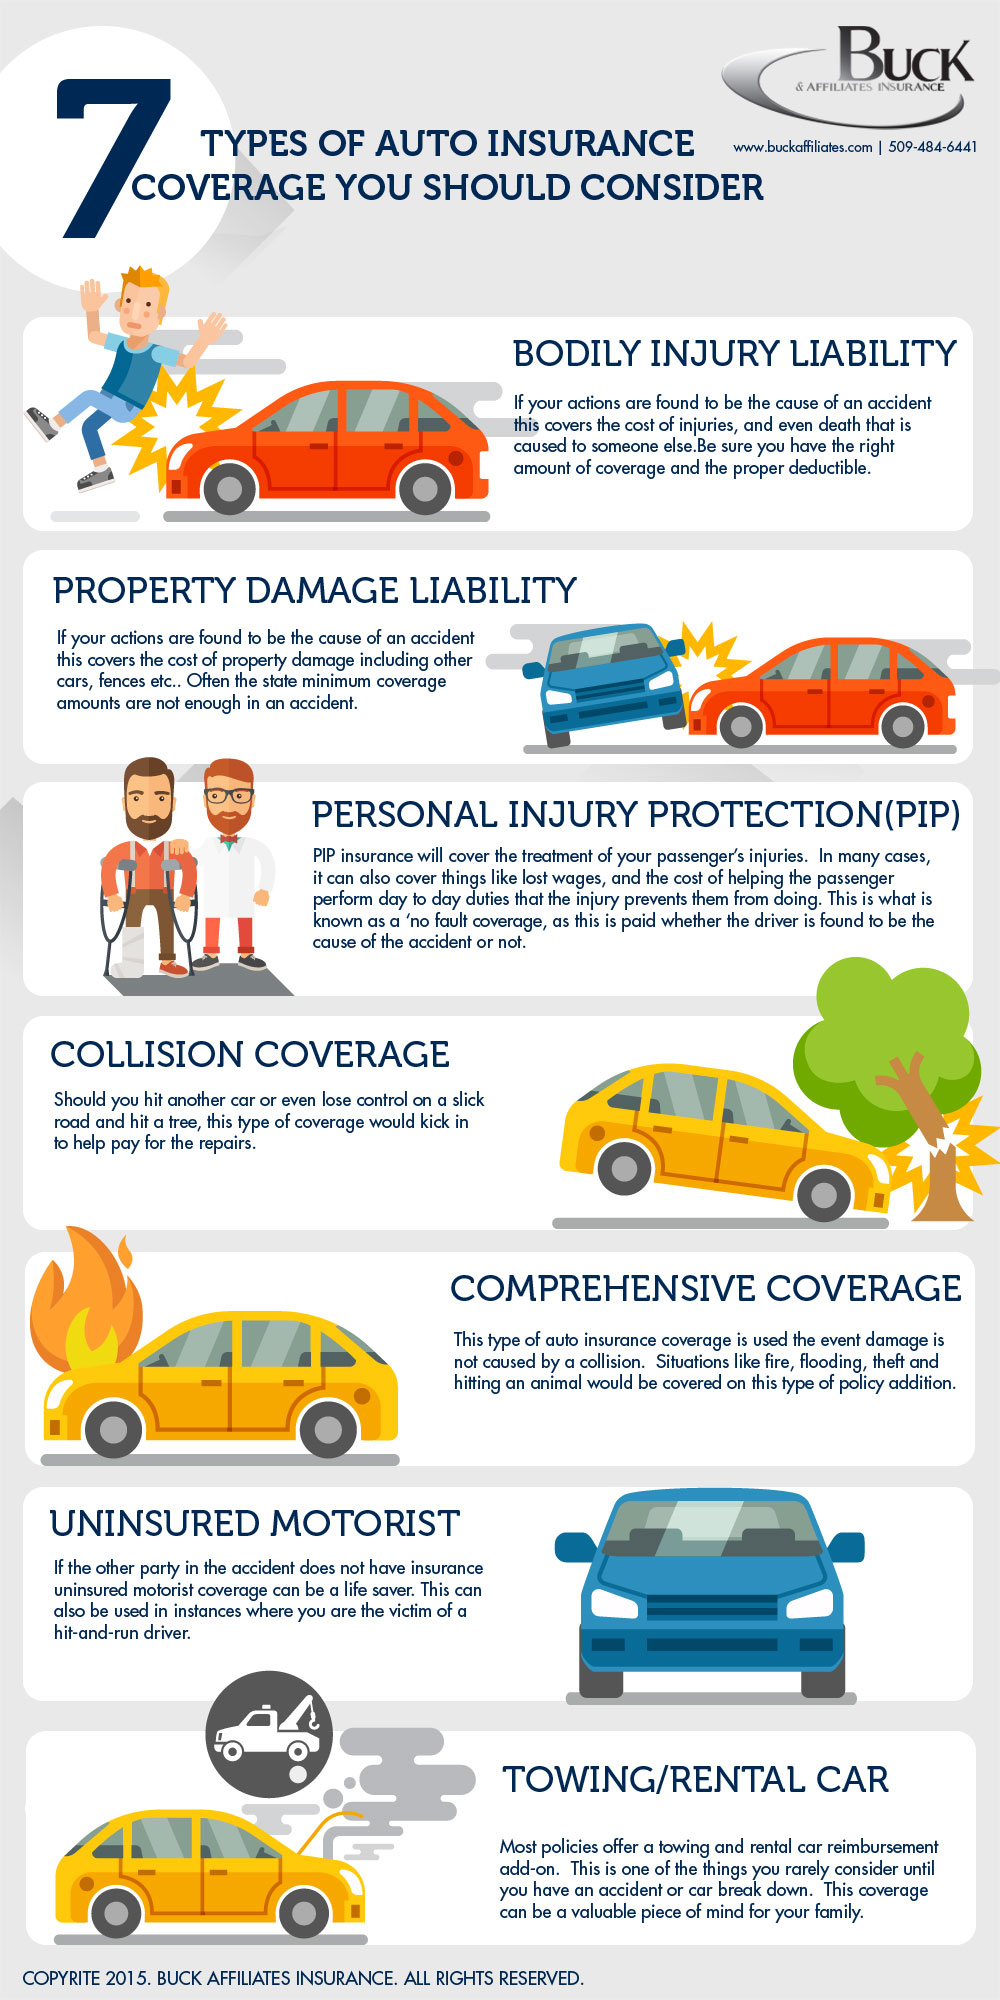 7 types of car insurance you should consider